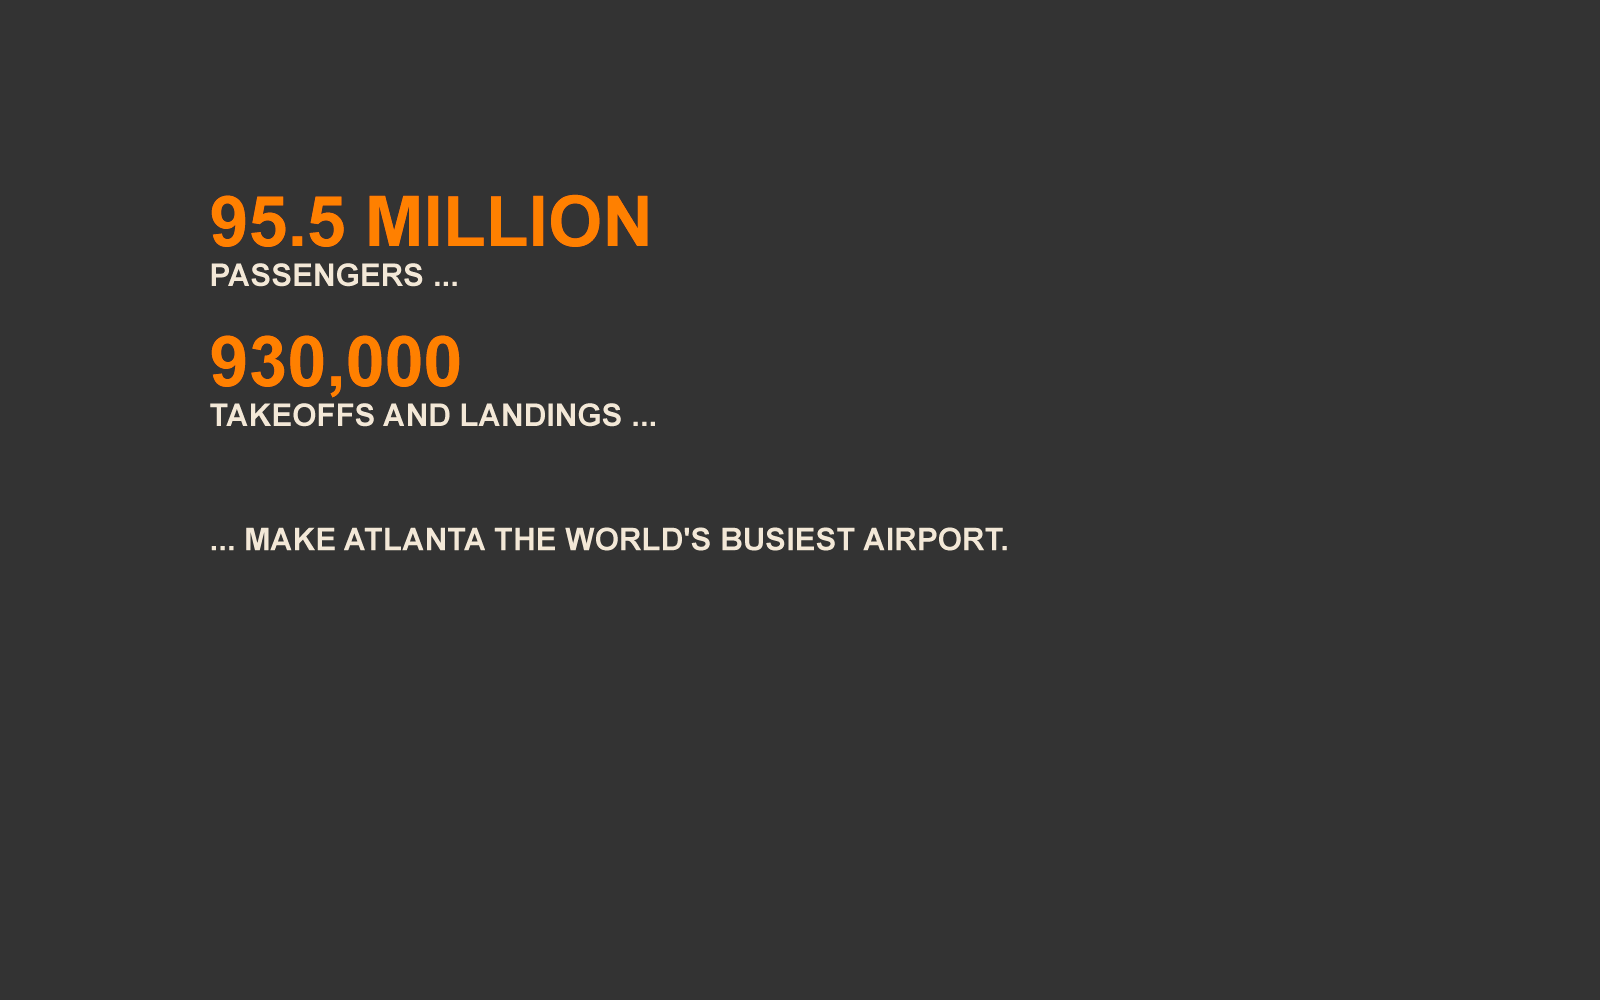 Atl24 A Day In The Life Of The World S Busiest Airport Cnn Com